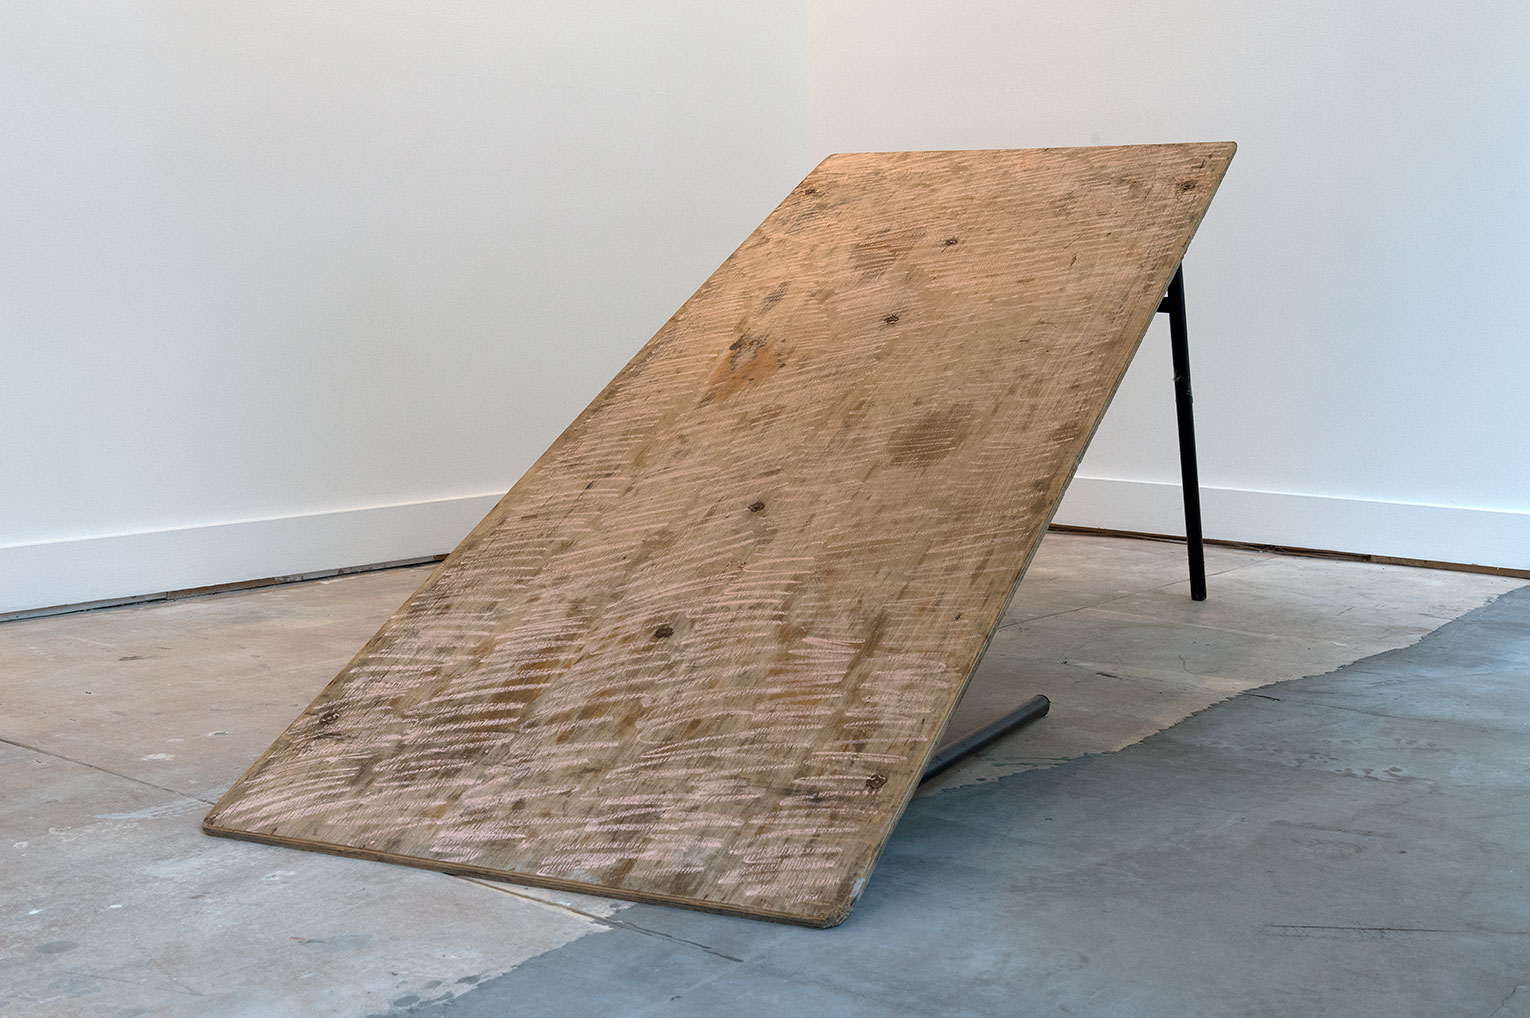 <b>Title:&nbsp;</b>Mean (6ft trestle)<br /><b>Year:&nbsp;</b>2011<br /><b>Medium:&nbsp;</b>Hire function table and chalk<br /><b>Size:&nbsp;</b>Dimensions variable